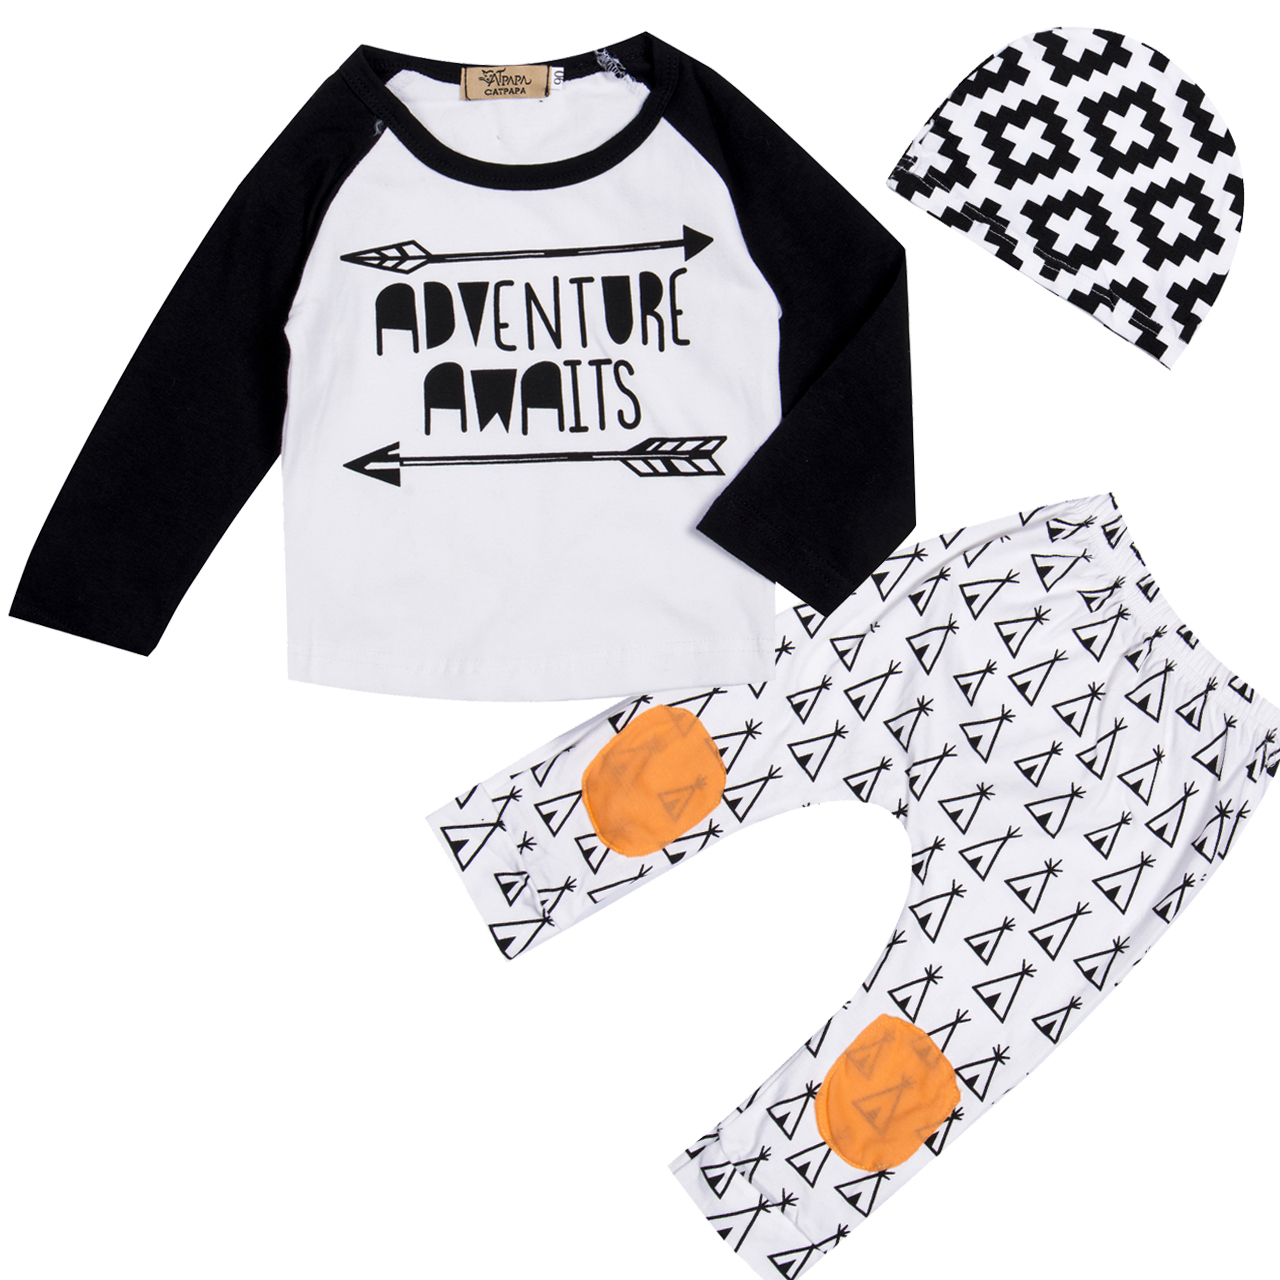 3 Pcs Newborn Kids Baby Girl Boy Letter Arrows Clothing Sets Infant Babies Long Sleeve Tops+Tents Pants+Hat Outfits Set Clothes 0 24m newborn infant baby boy girl clothes set romper bodysuit tops rainbow long pants hat 3pcs toddler winter fall outfits